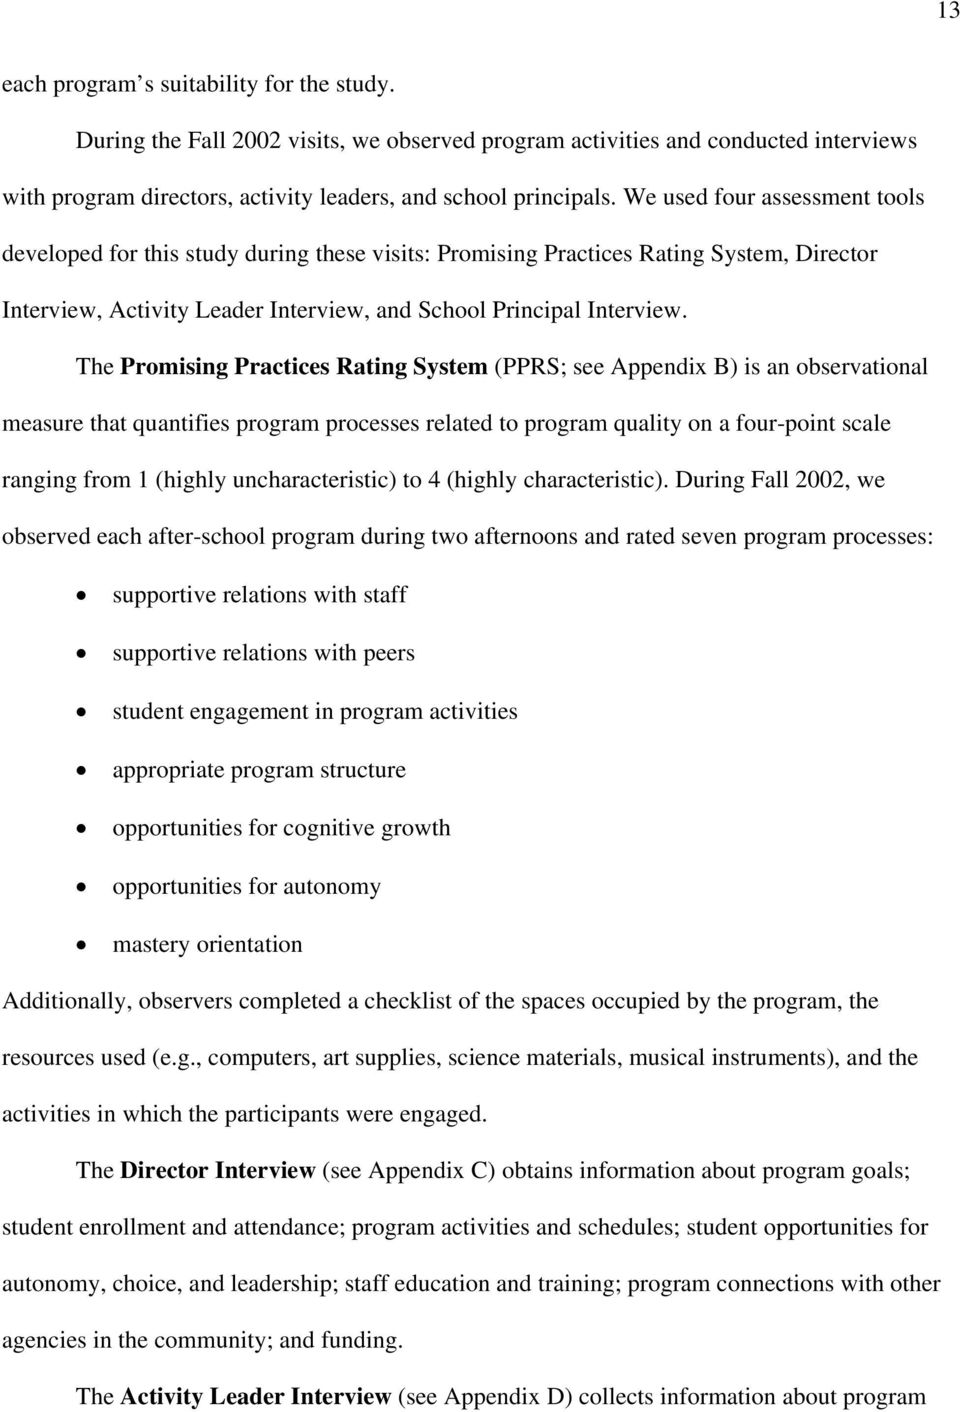 The Promising Practices Rating System (PPRS; see Appendix B) is an observational measure that quantifies program processes related to program quality on a four-point scale ranging from 1 (highly